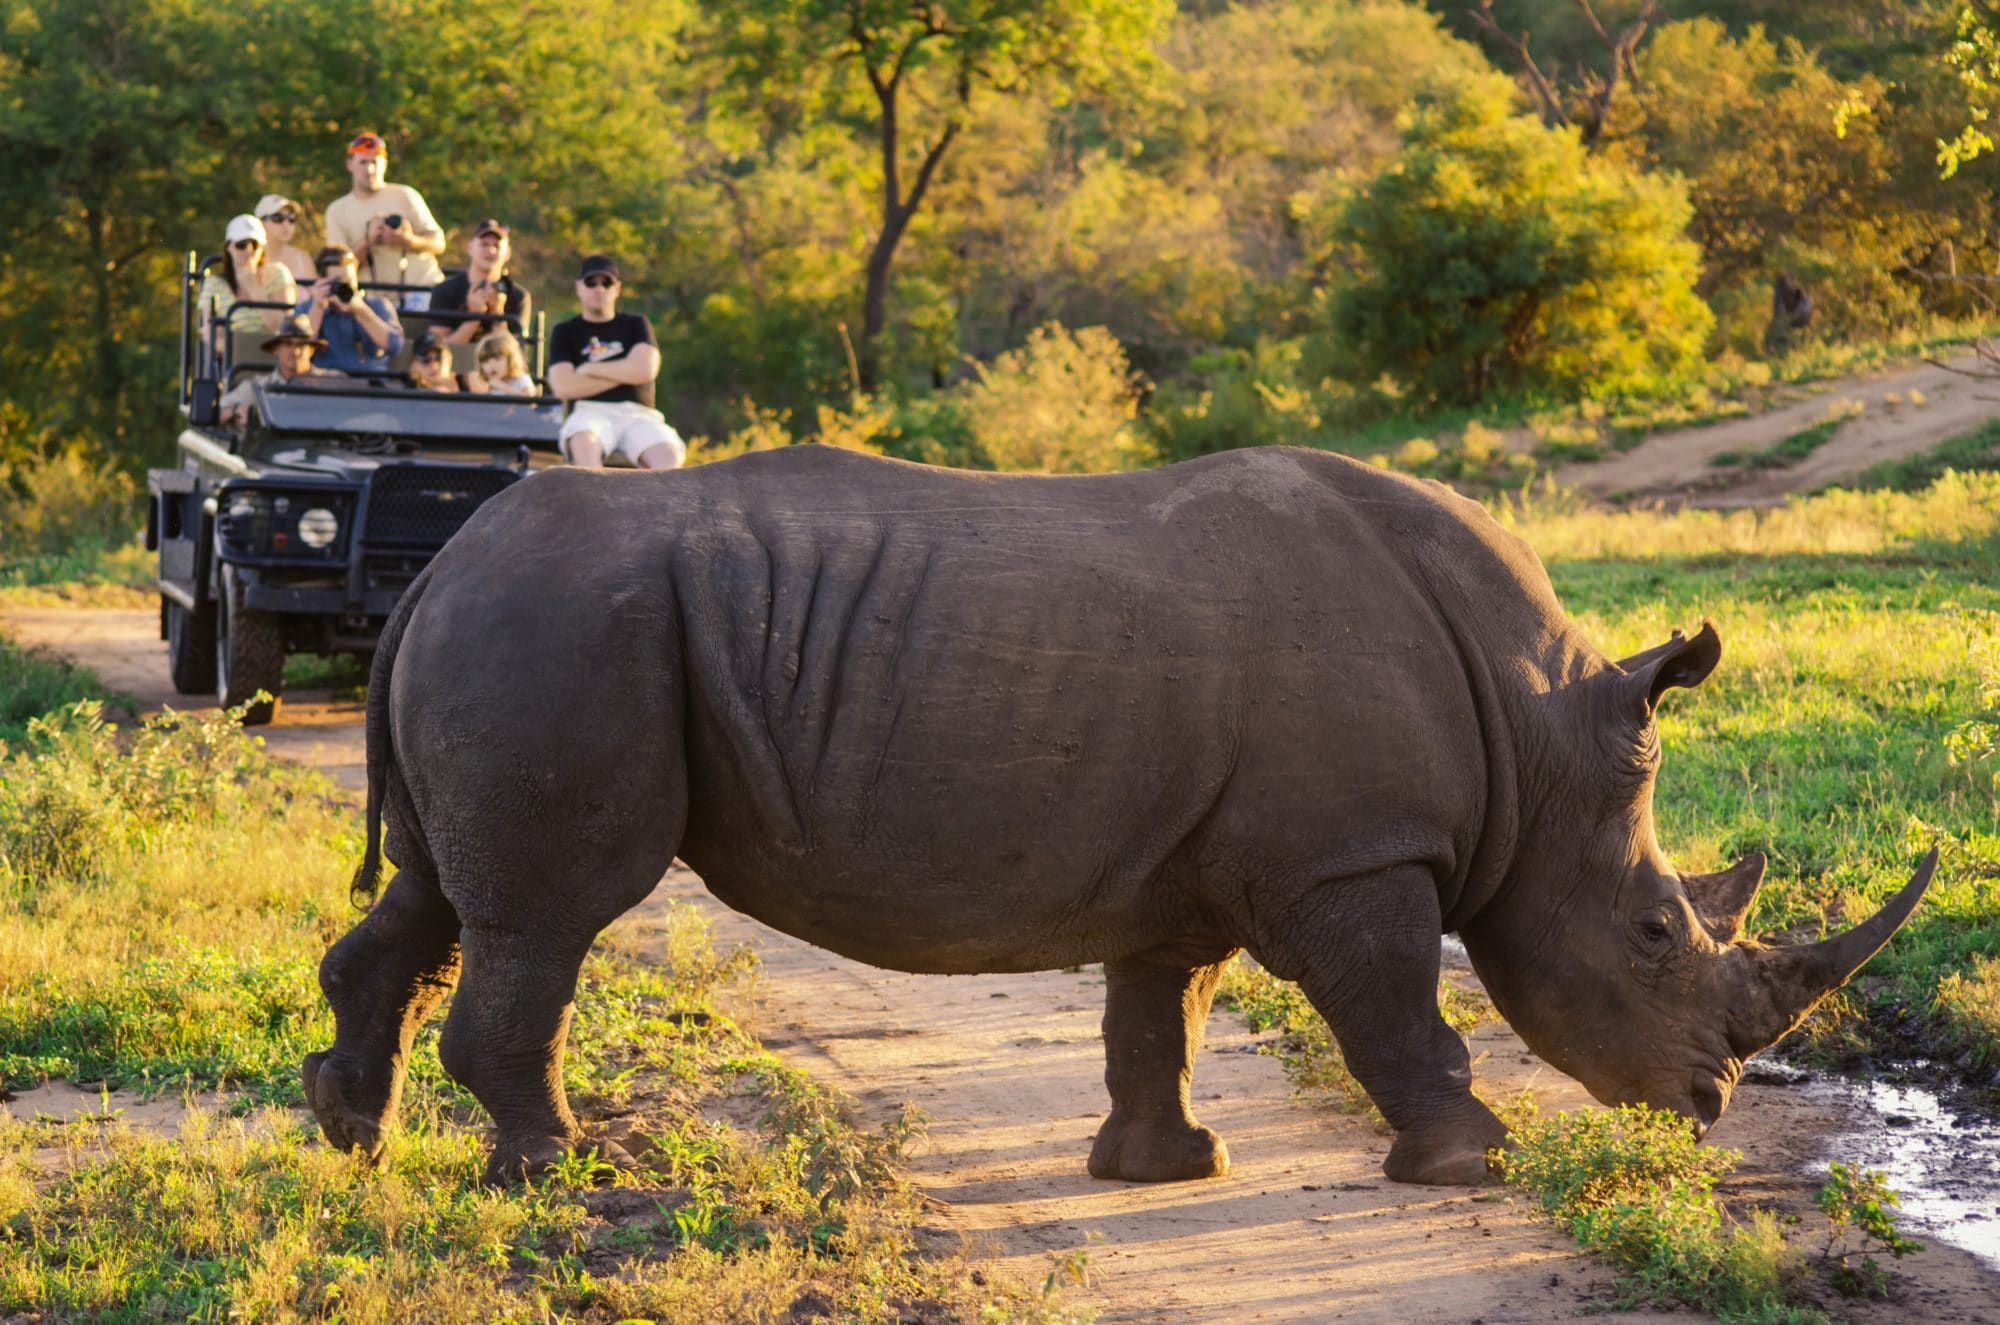 rhino crossing in front of travelers that are on a game drive